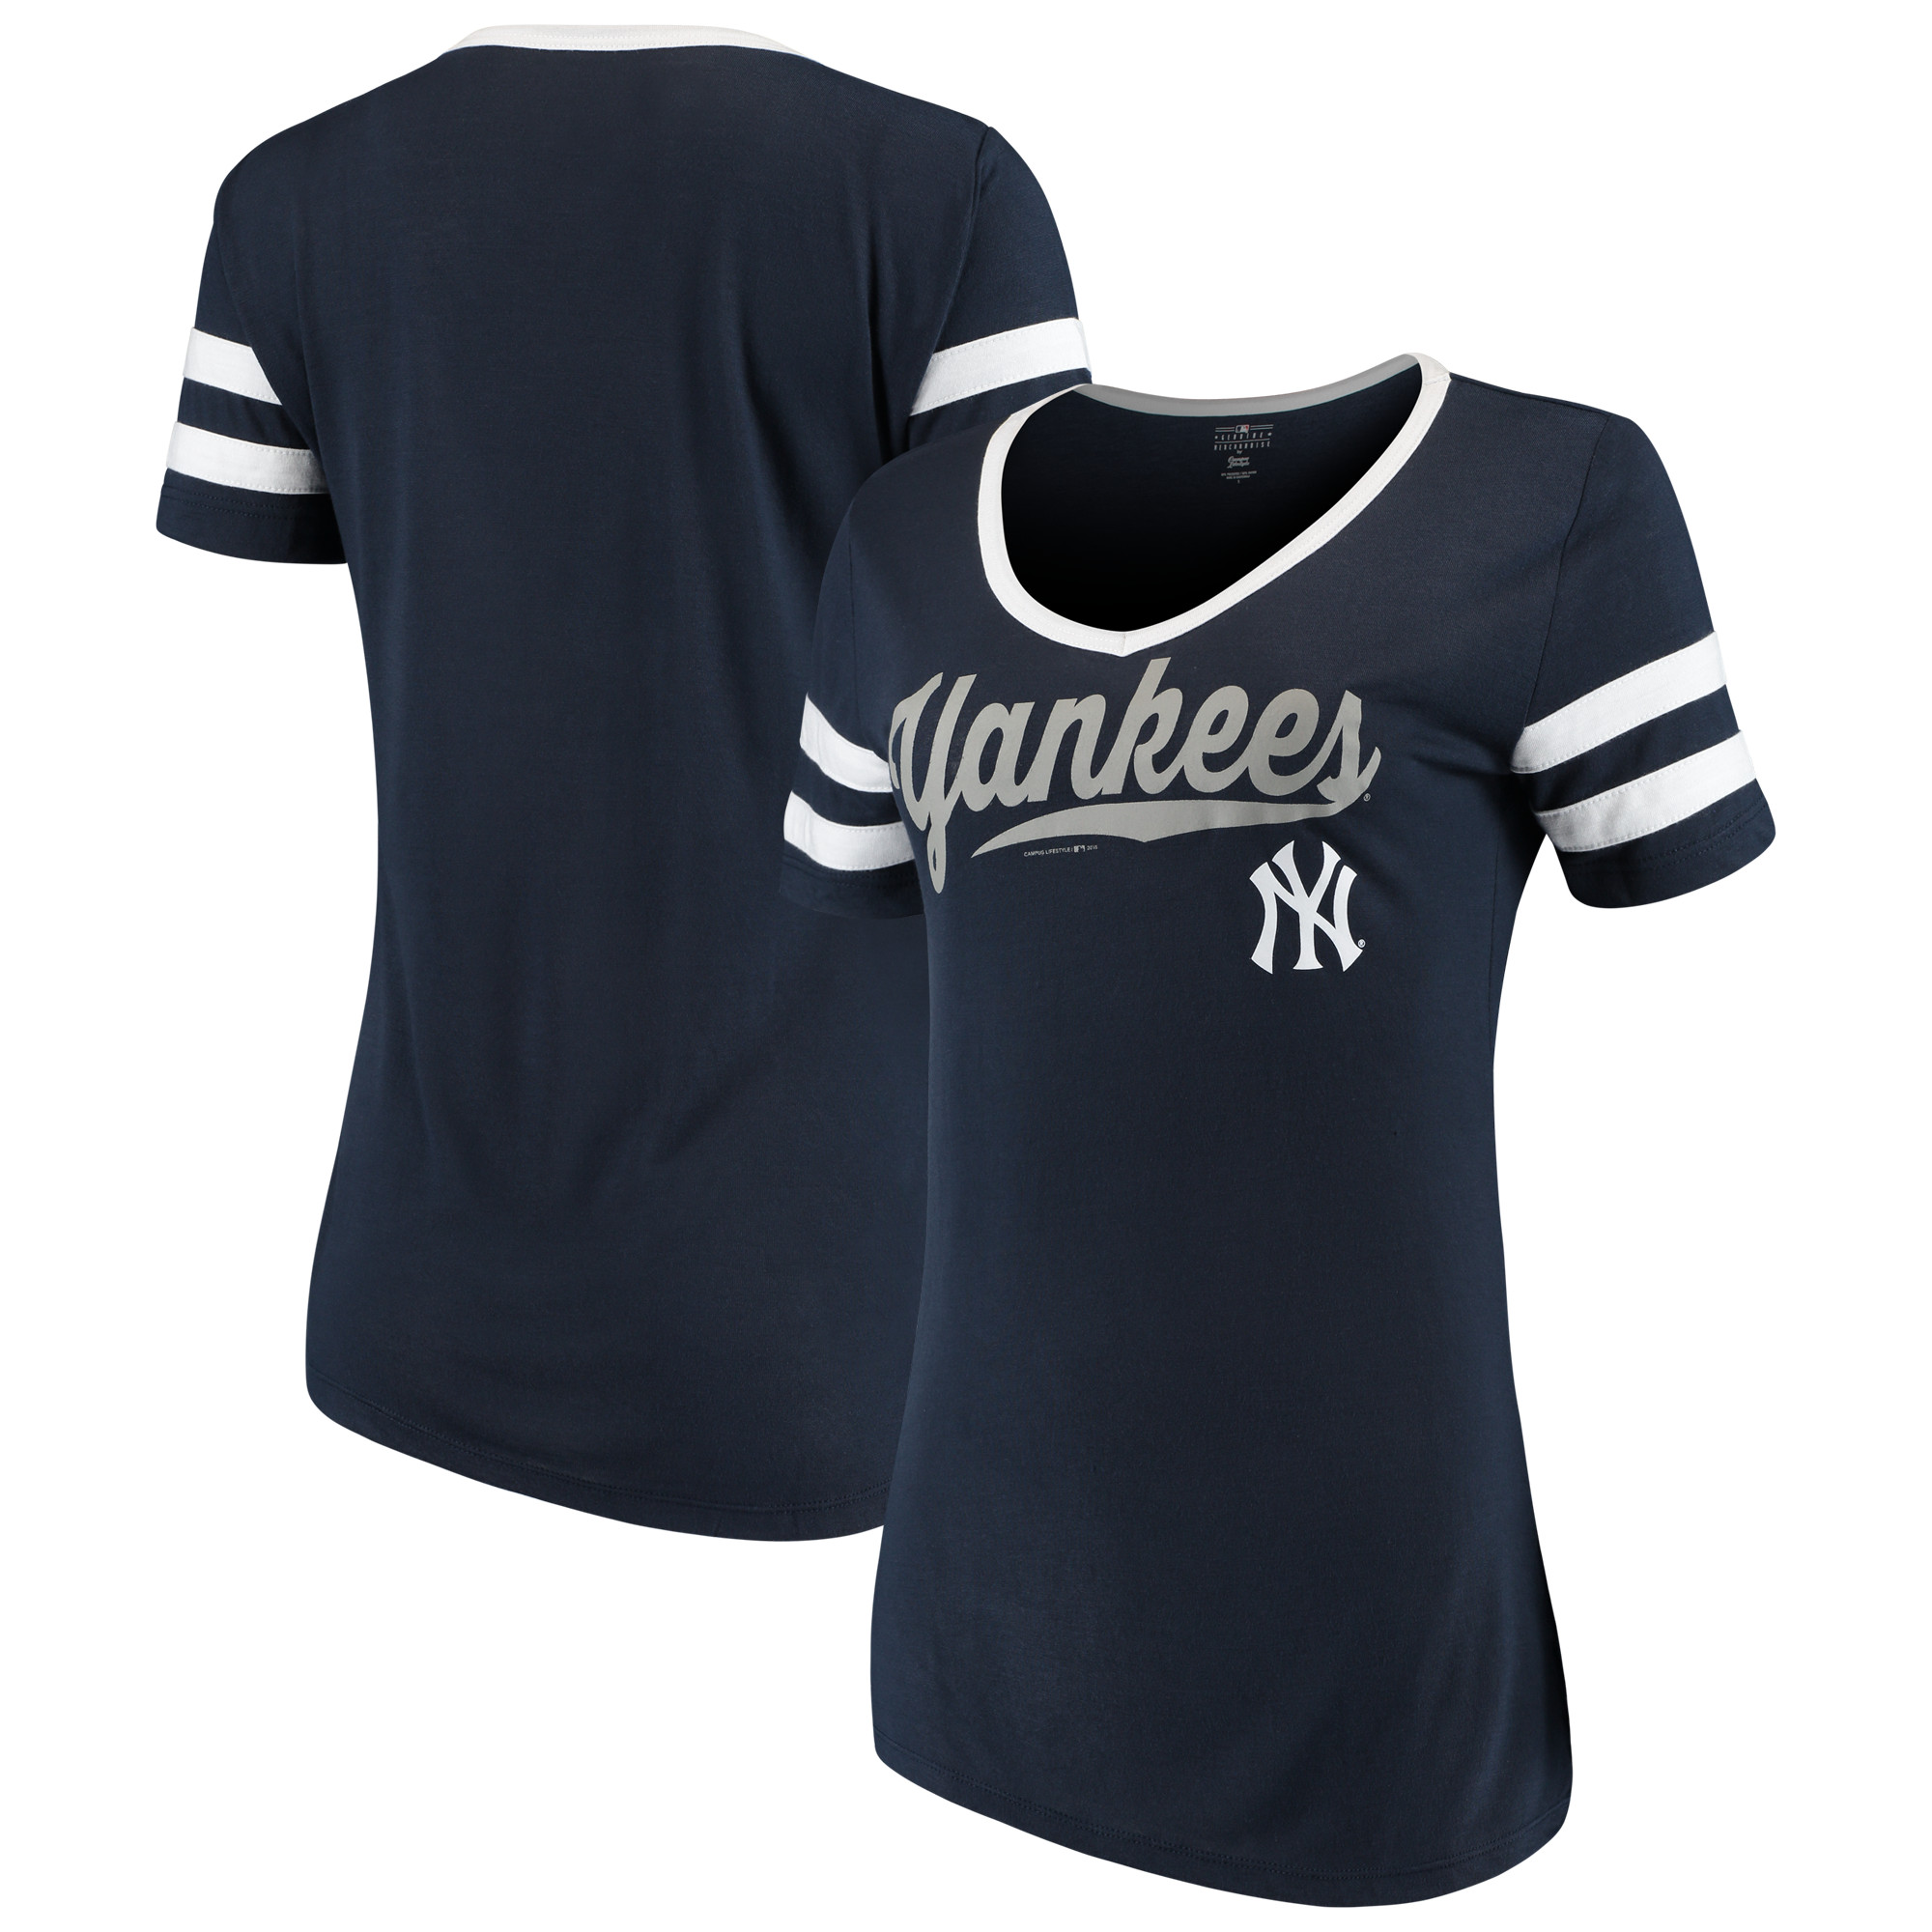 the best attitude 92c2a 54d1a Women's New Era Navy New York Yankees Jersey V-Neck T-Shirt